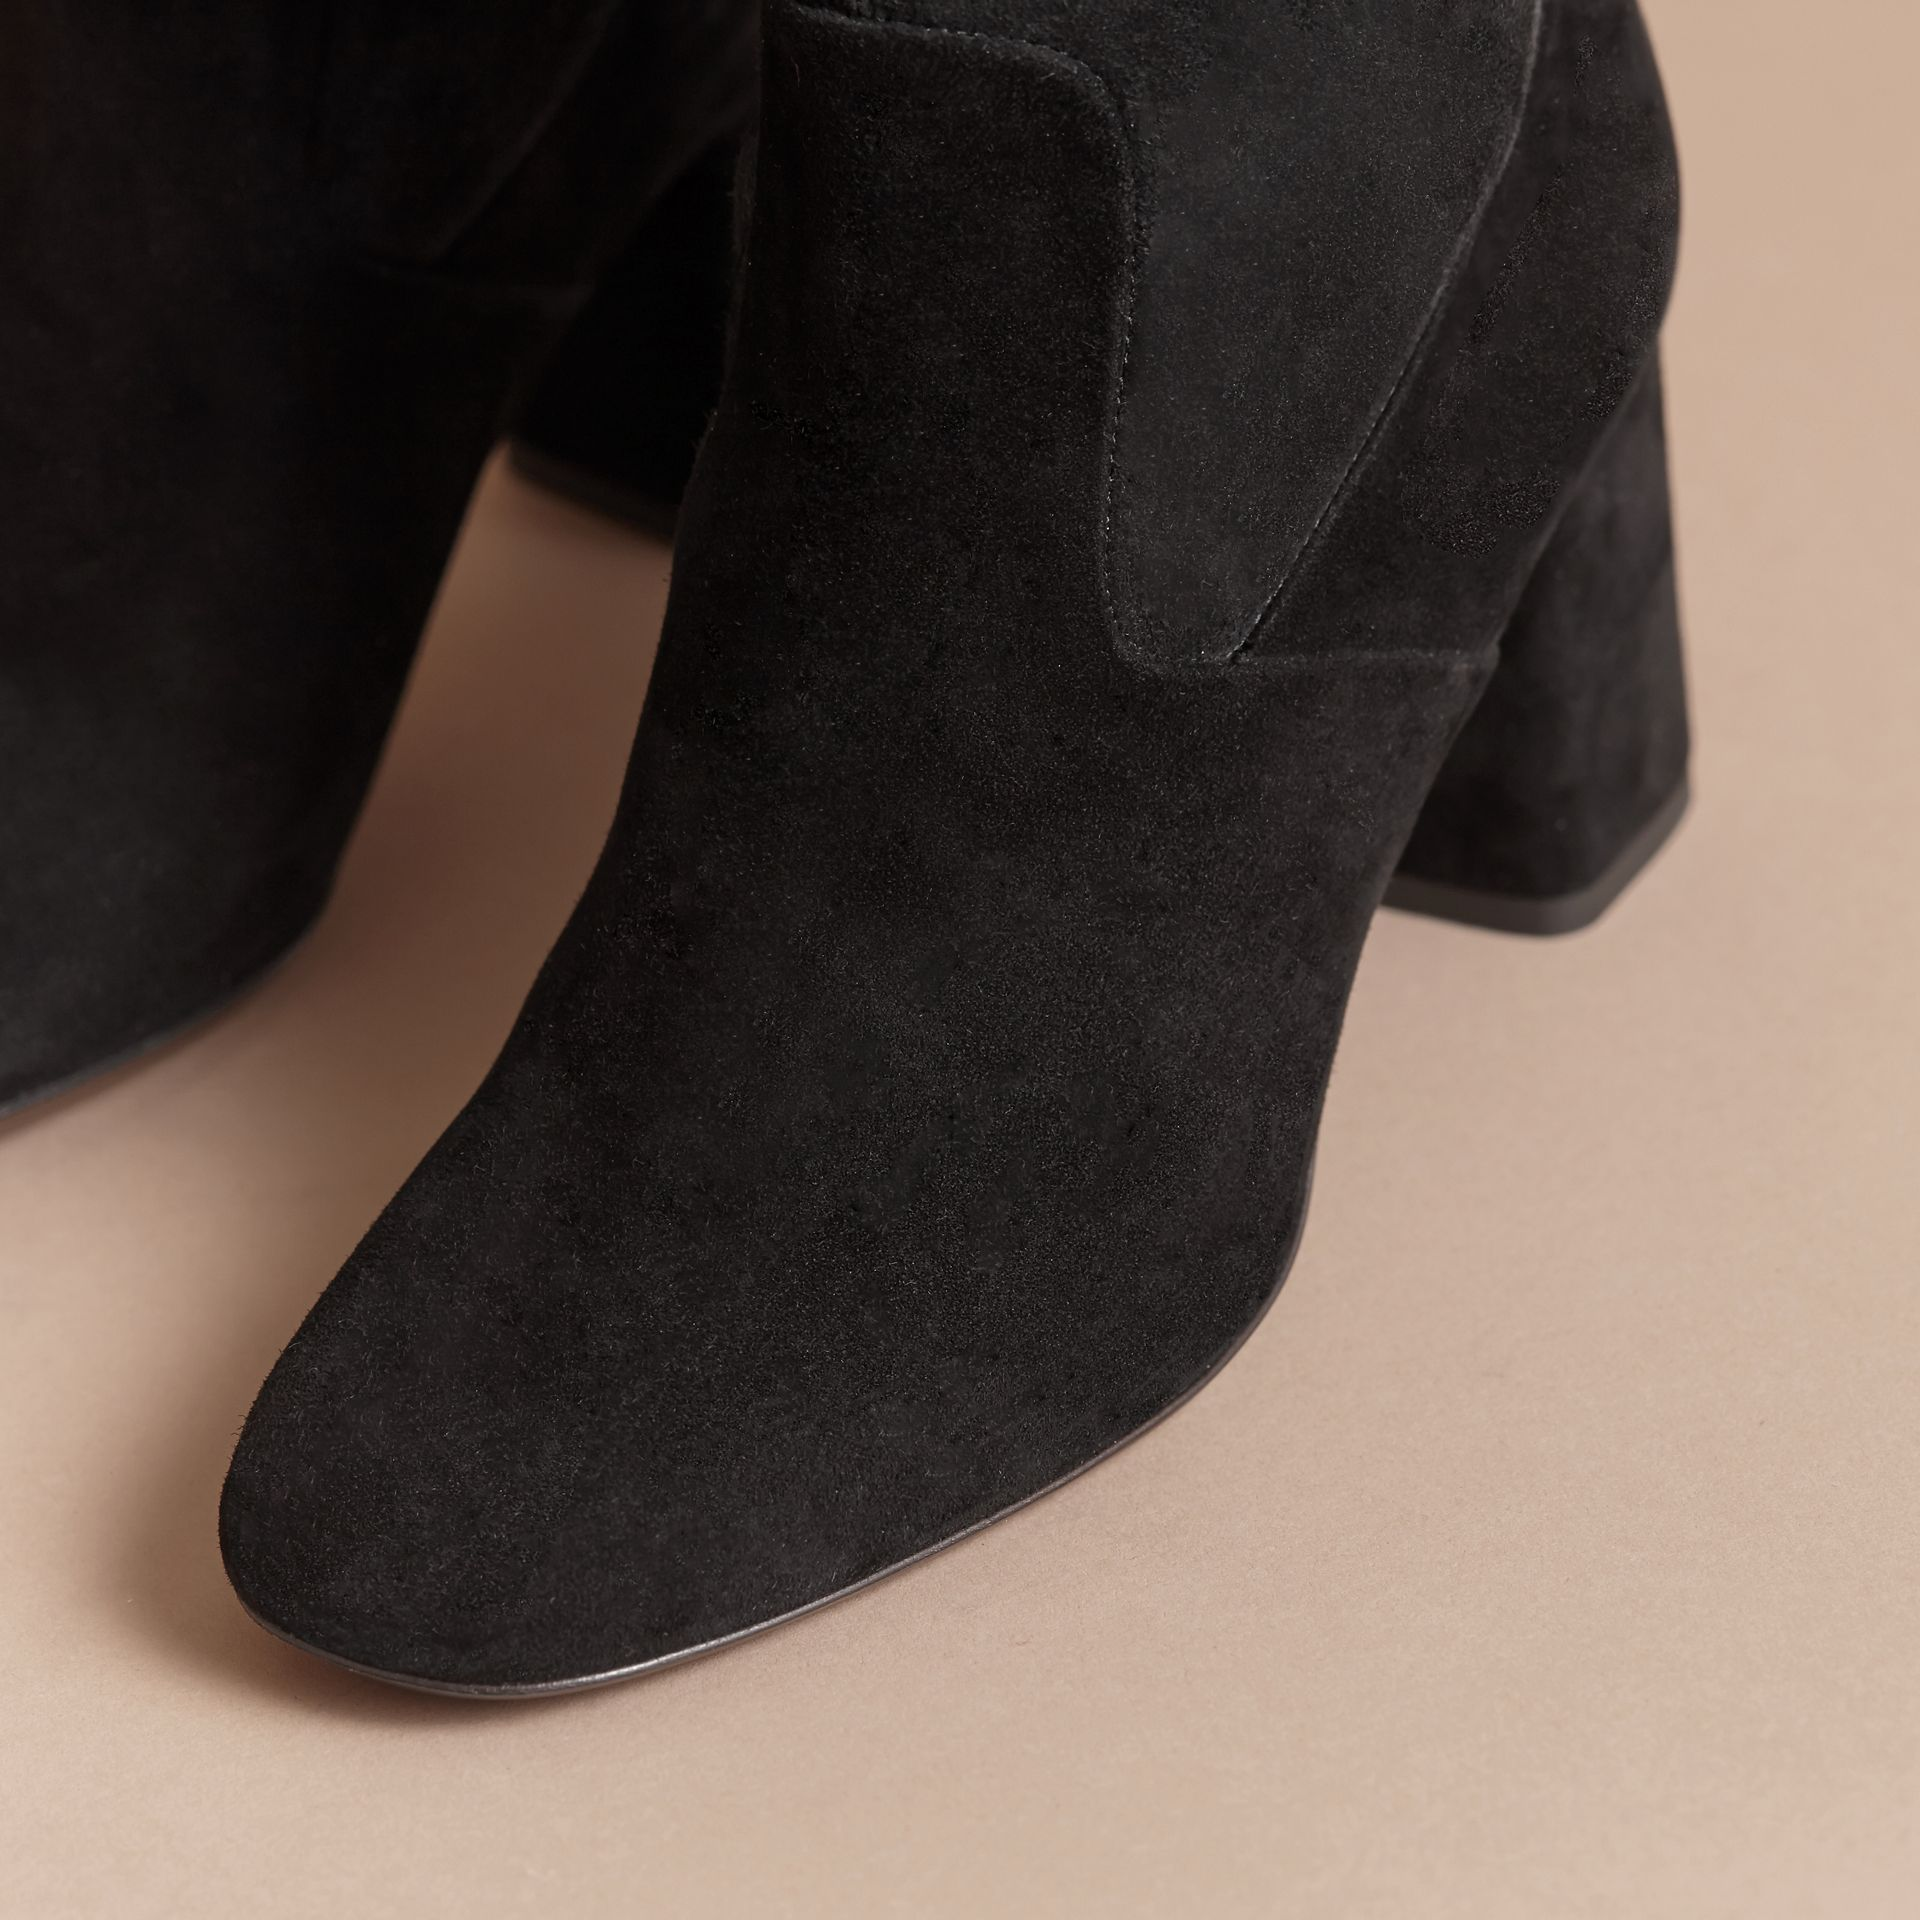 Buckle Detail Kidskin Boots in Black - Women | Burberry Canada - gallery image 5